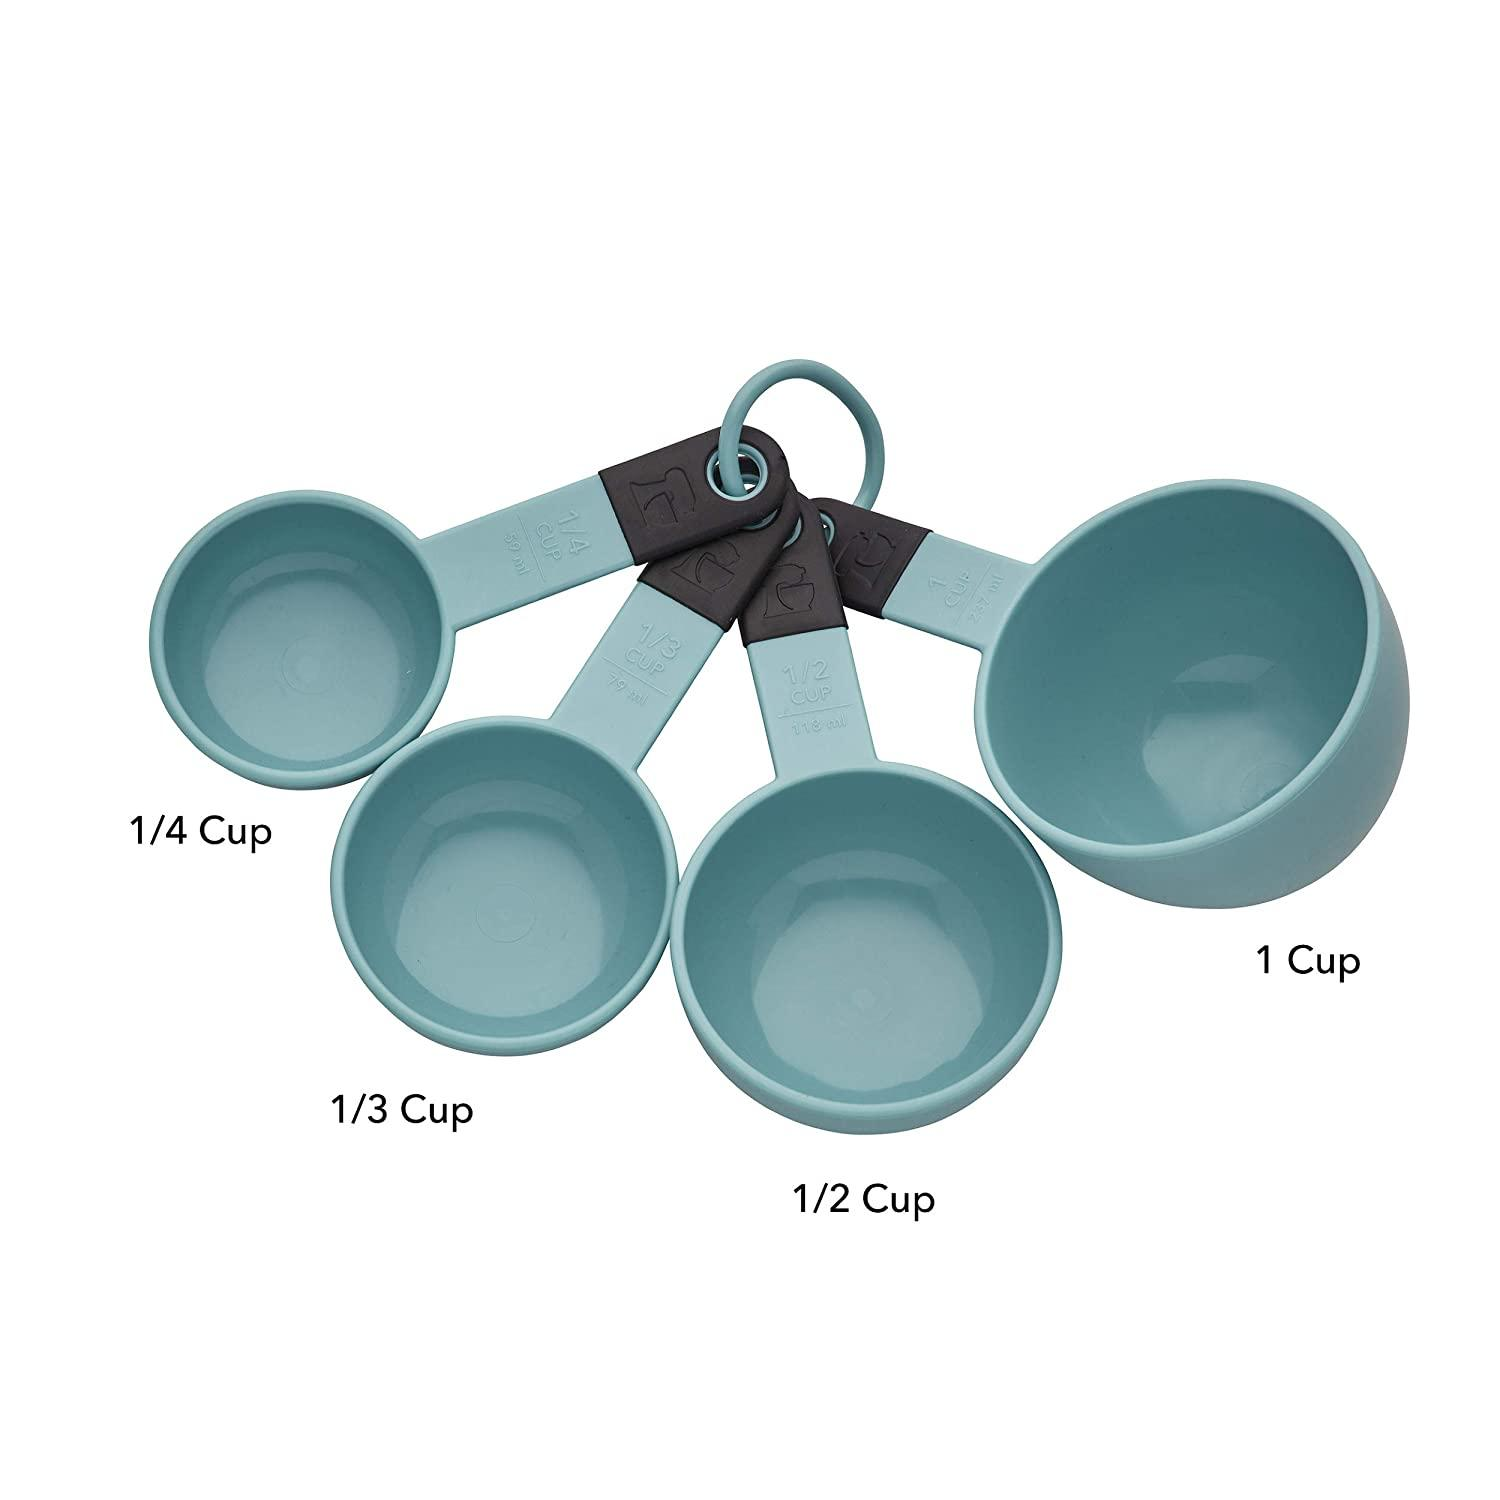 KitchenAid KE058OHAQA Classic Measuring Cups, Set of 4, Aqua Sky:Black